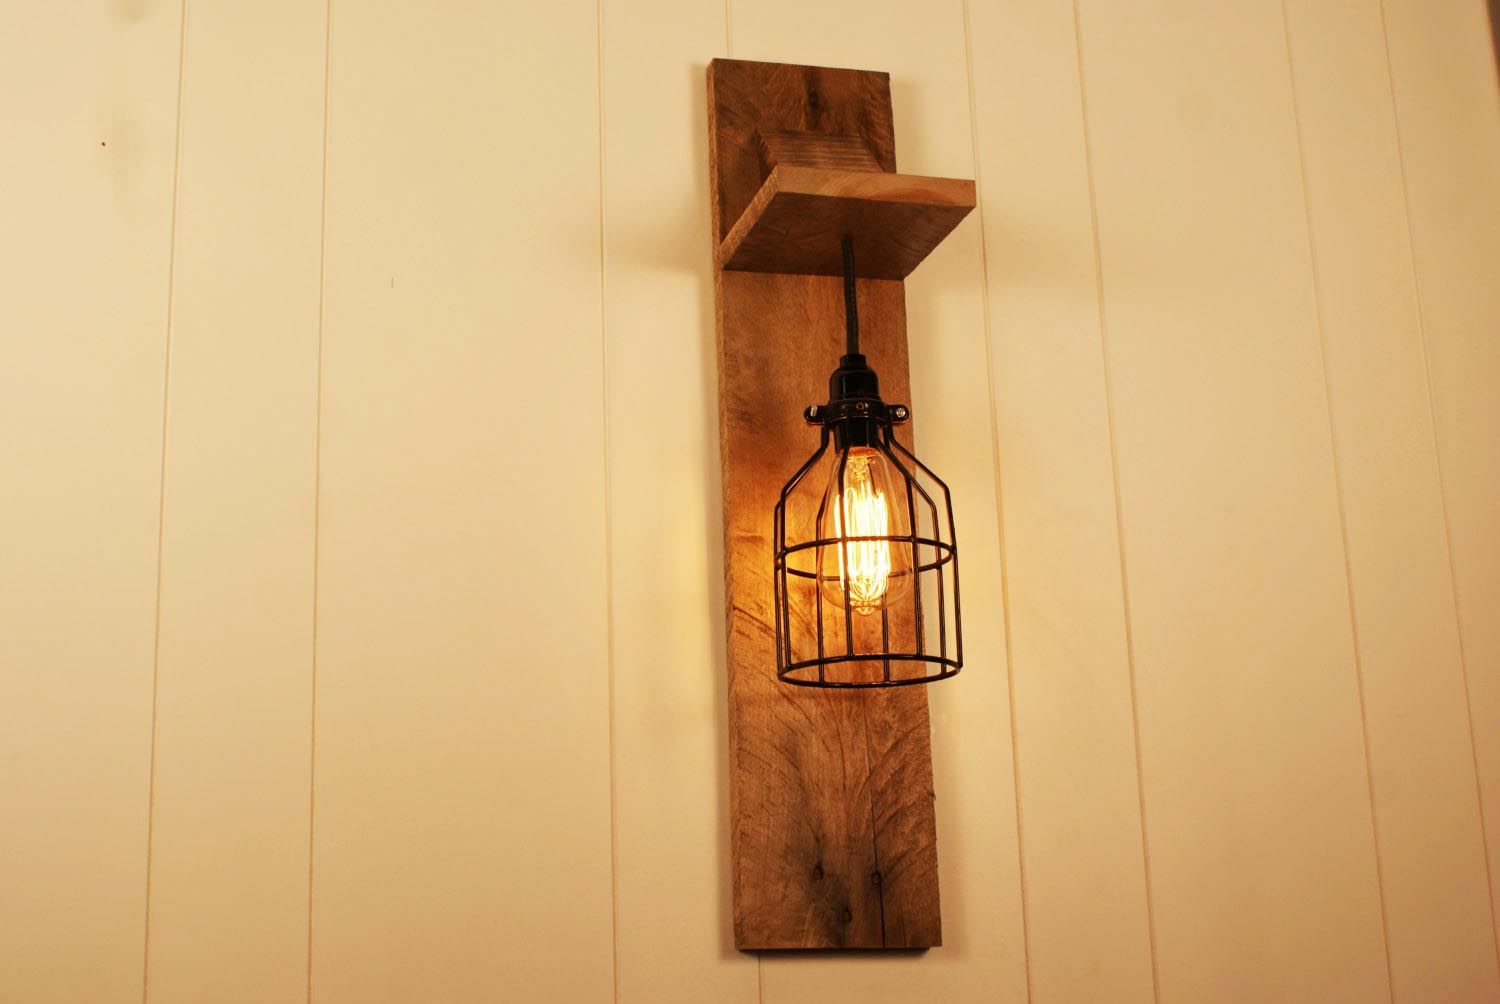 Choosing the right interior wall light fixtures for your home ...